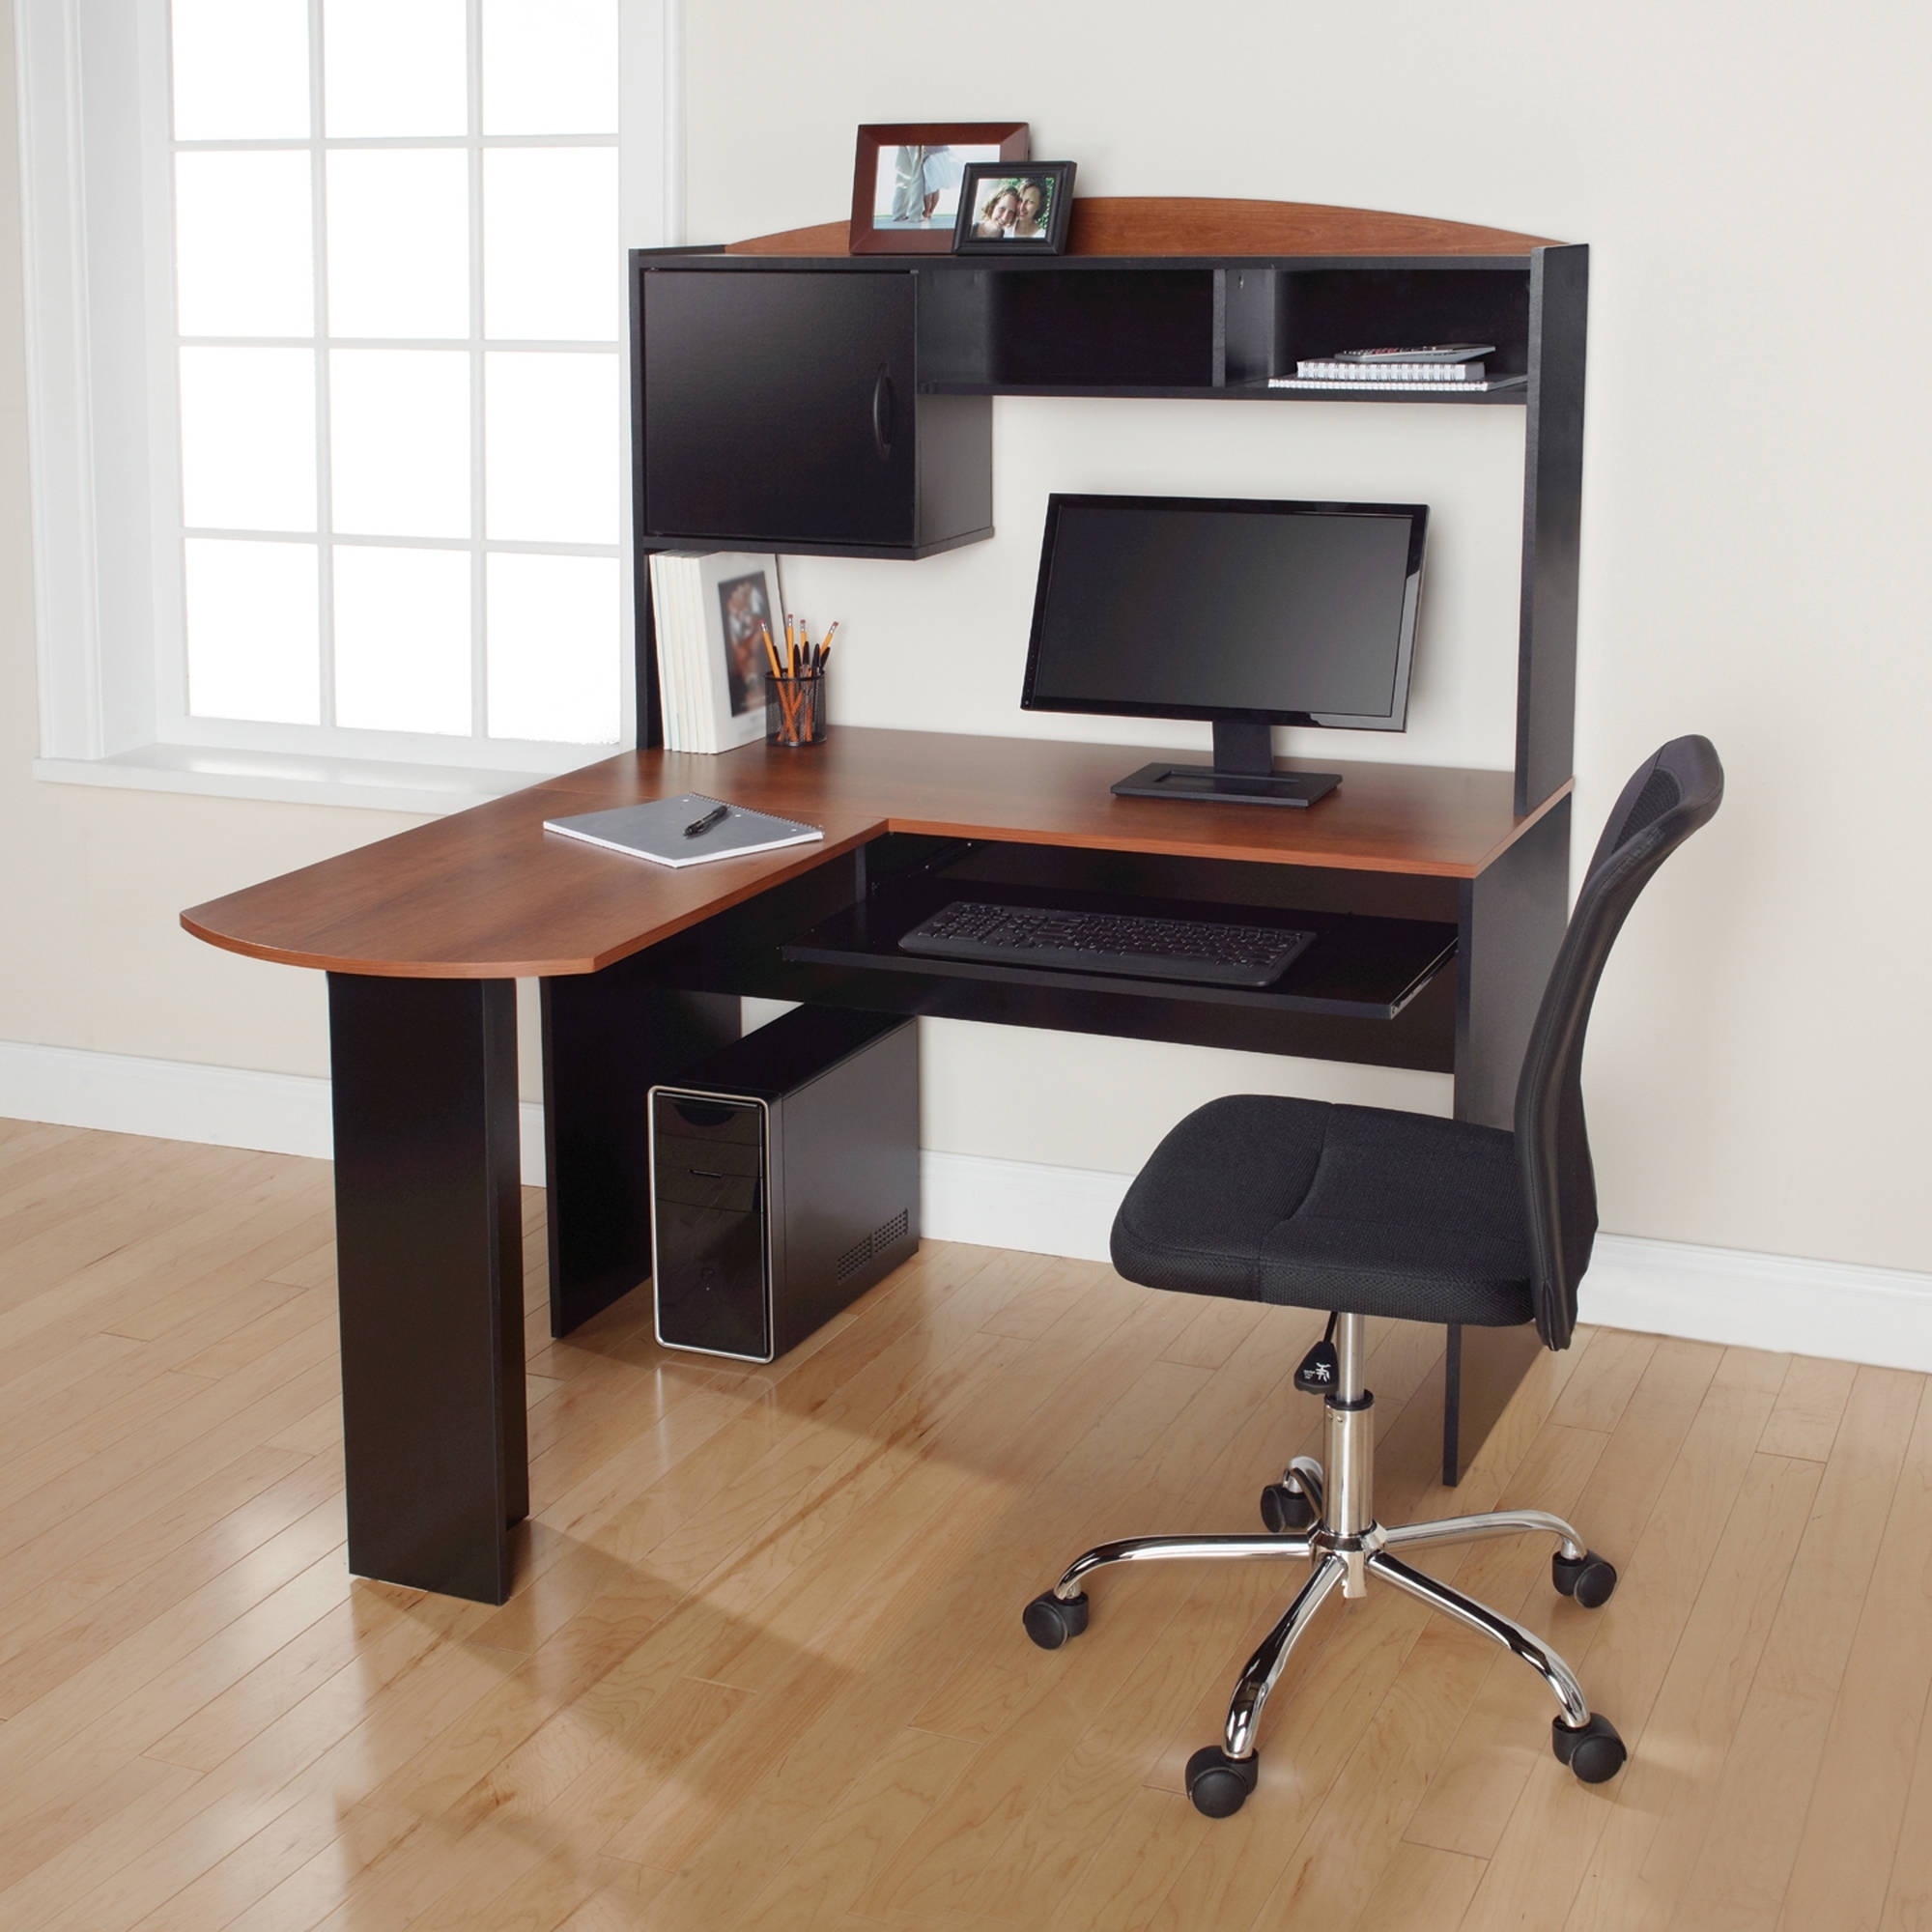 Top 80 Unbeatable Wayfair Home Office Furniture Corner Ladder Desk For Fashionable Computer Desks At Wayfair (View 5 of 20)